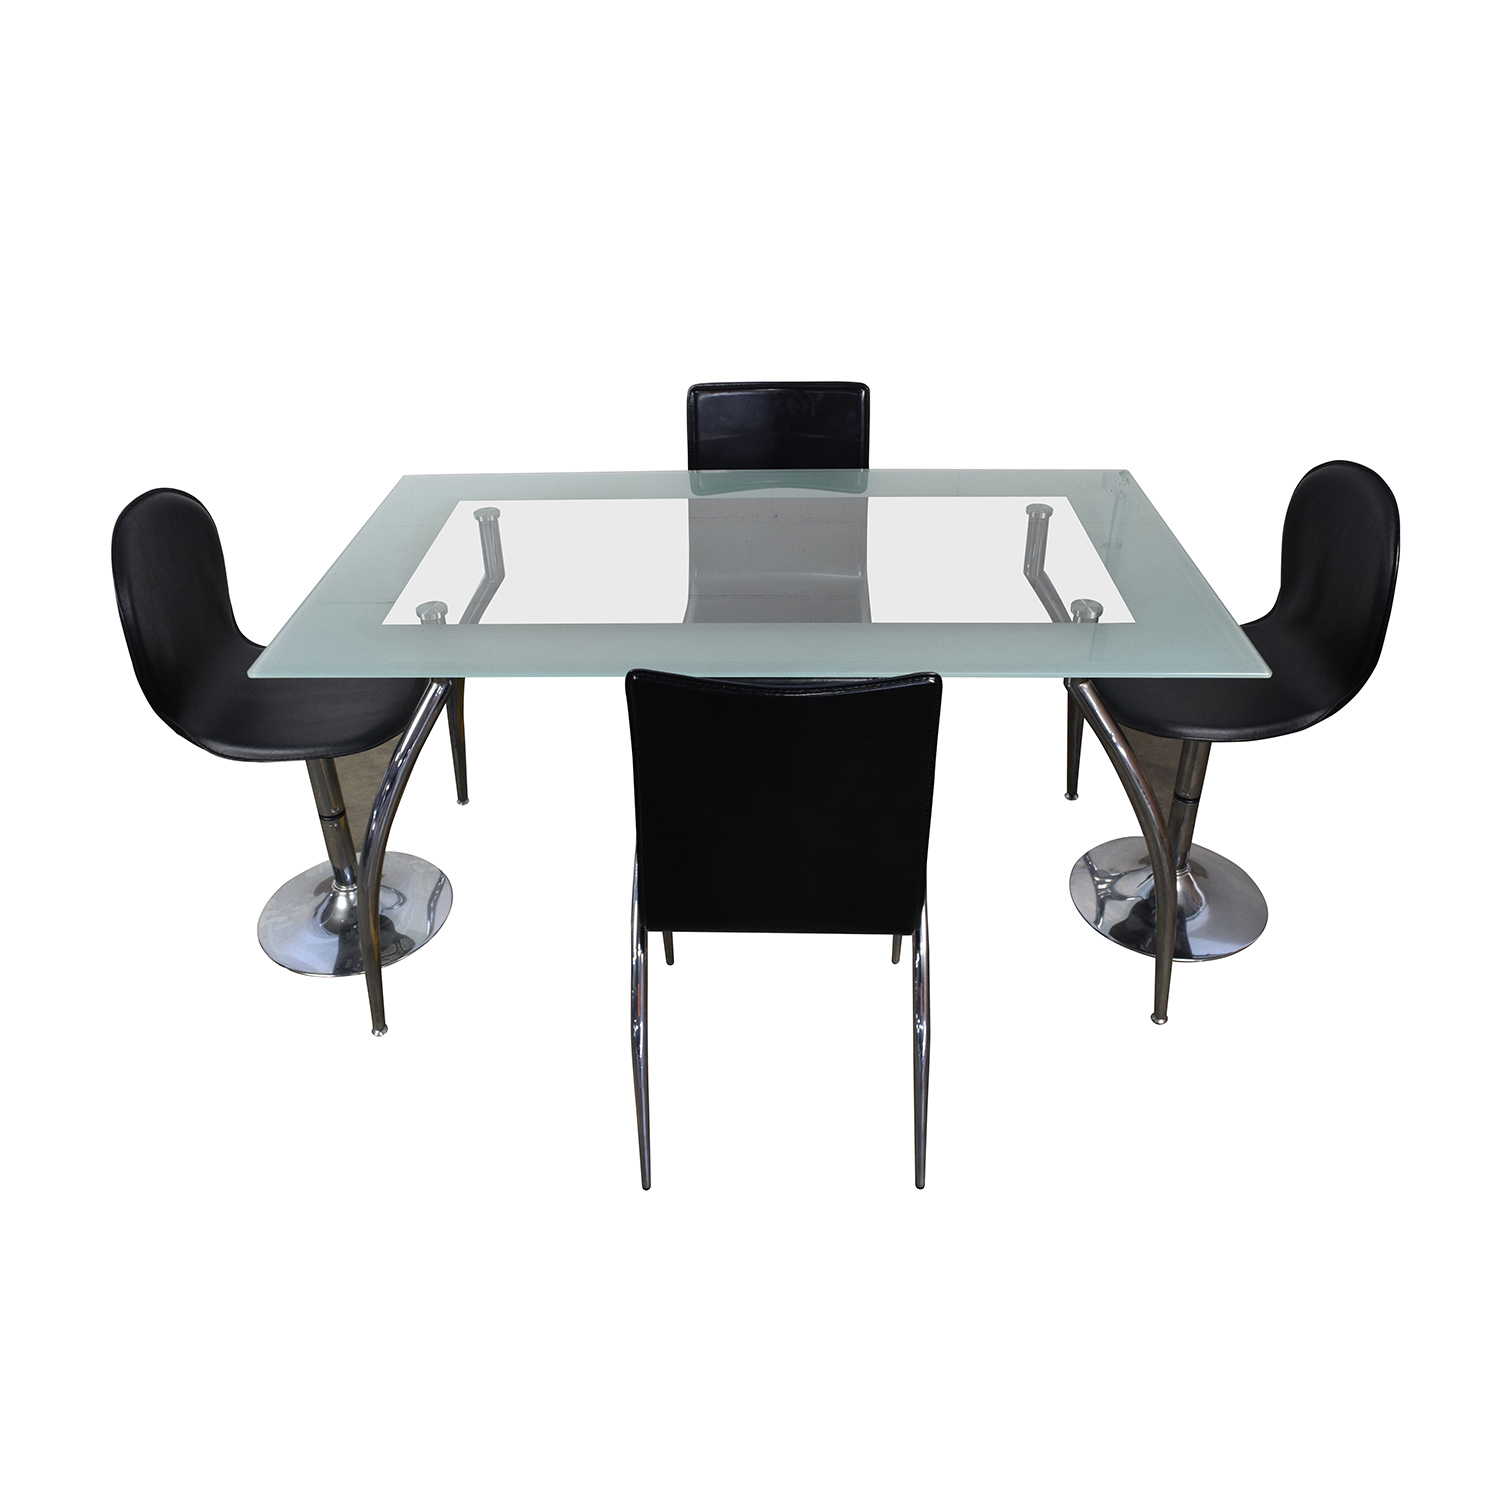 39 off the door store the door store rectangular glass for Glass table and chairs